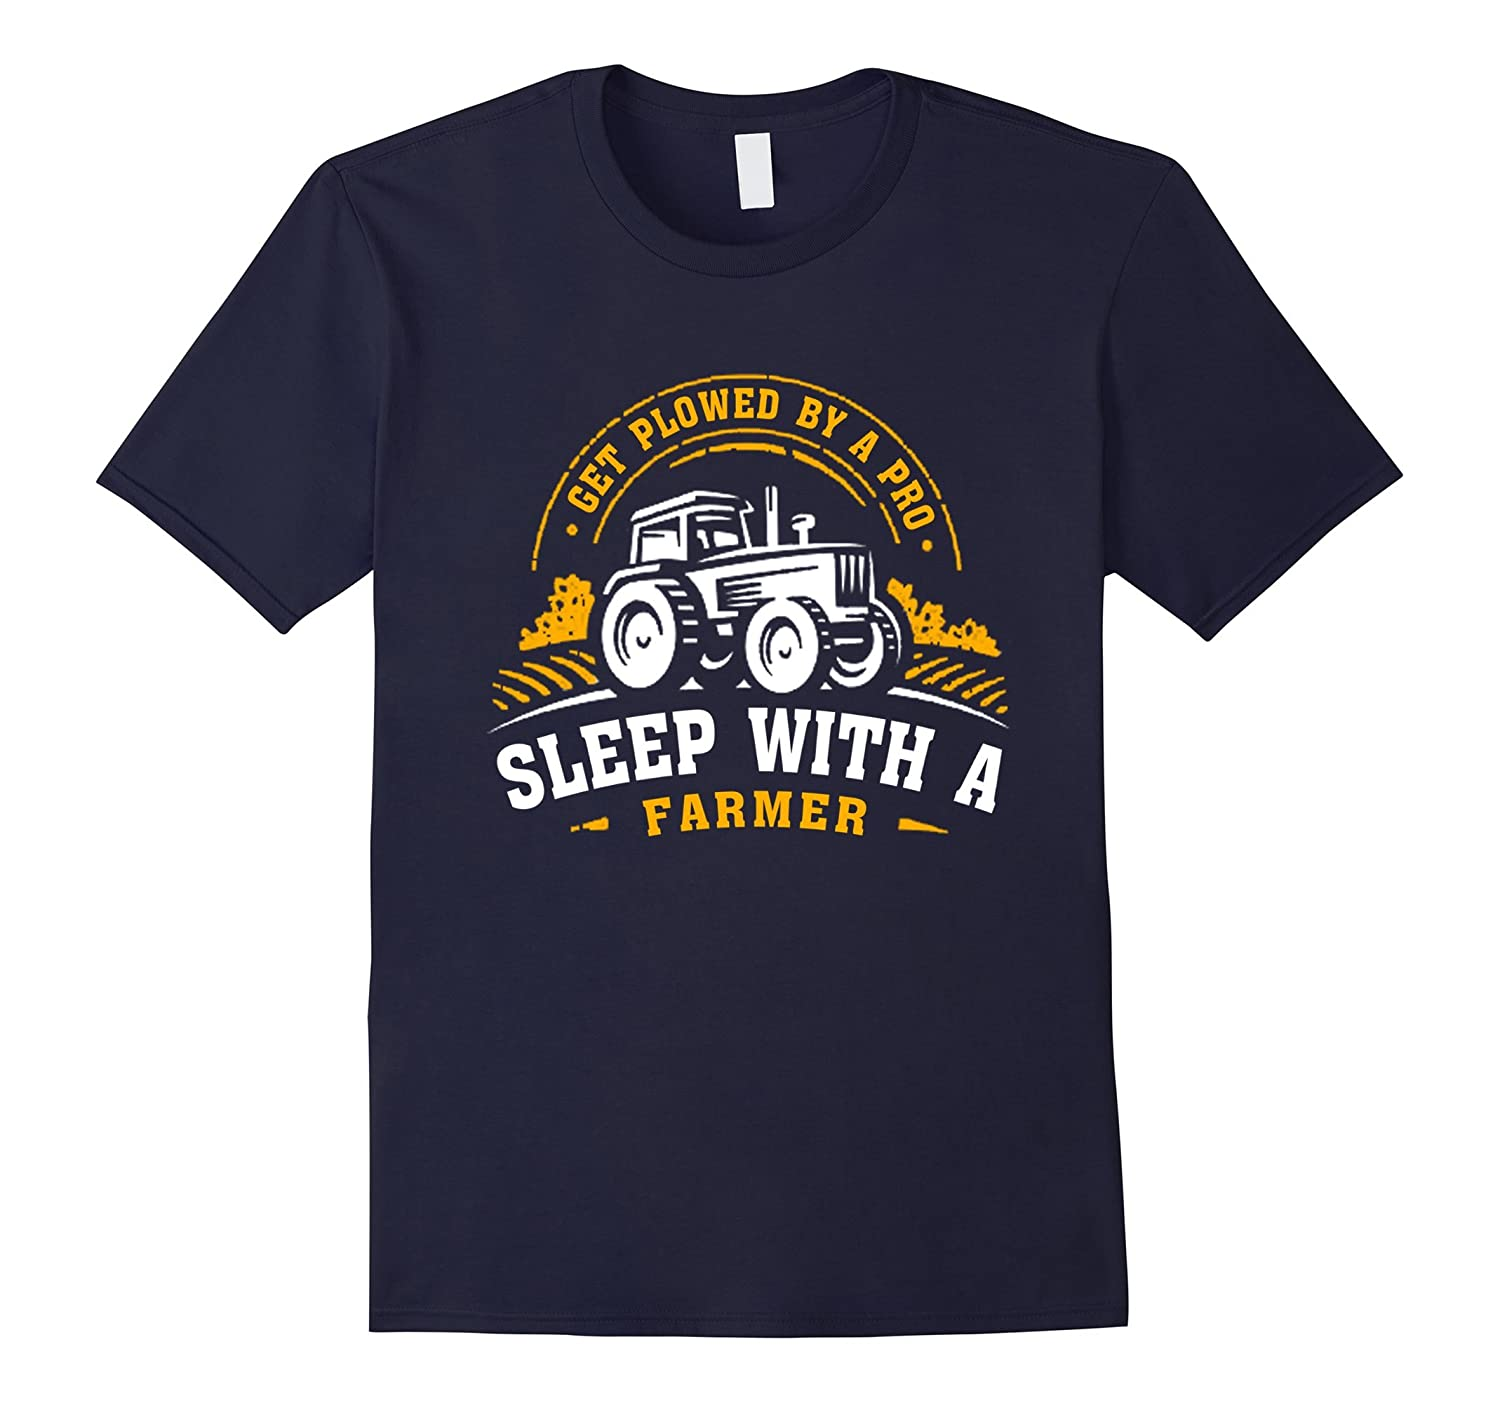 Get Plowed By A Pro Sleep With A Farmer, gift Farm T-Shirt-BN